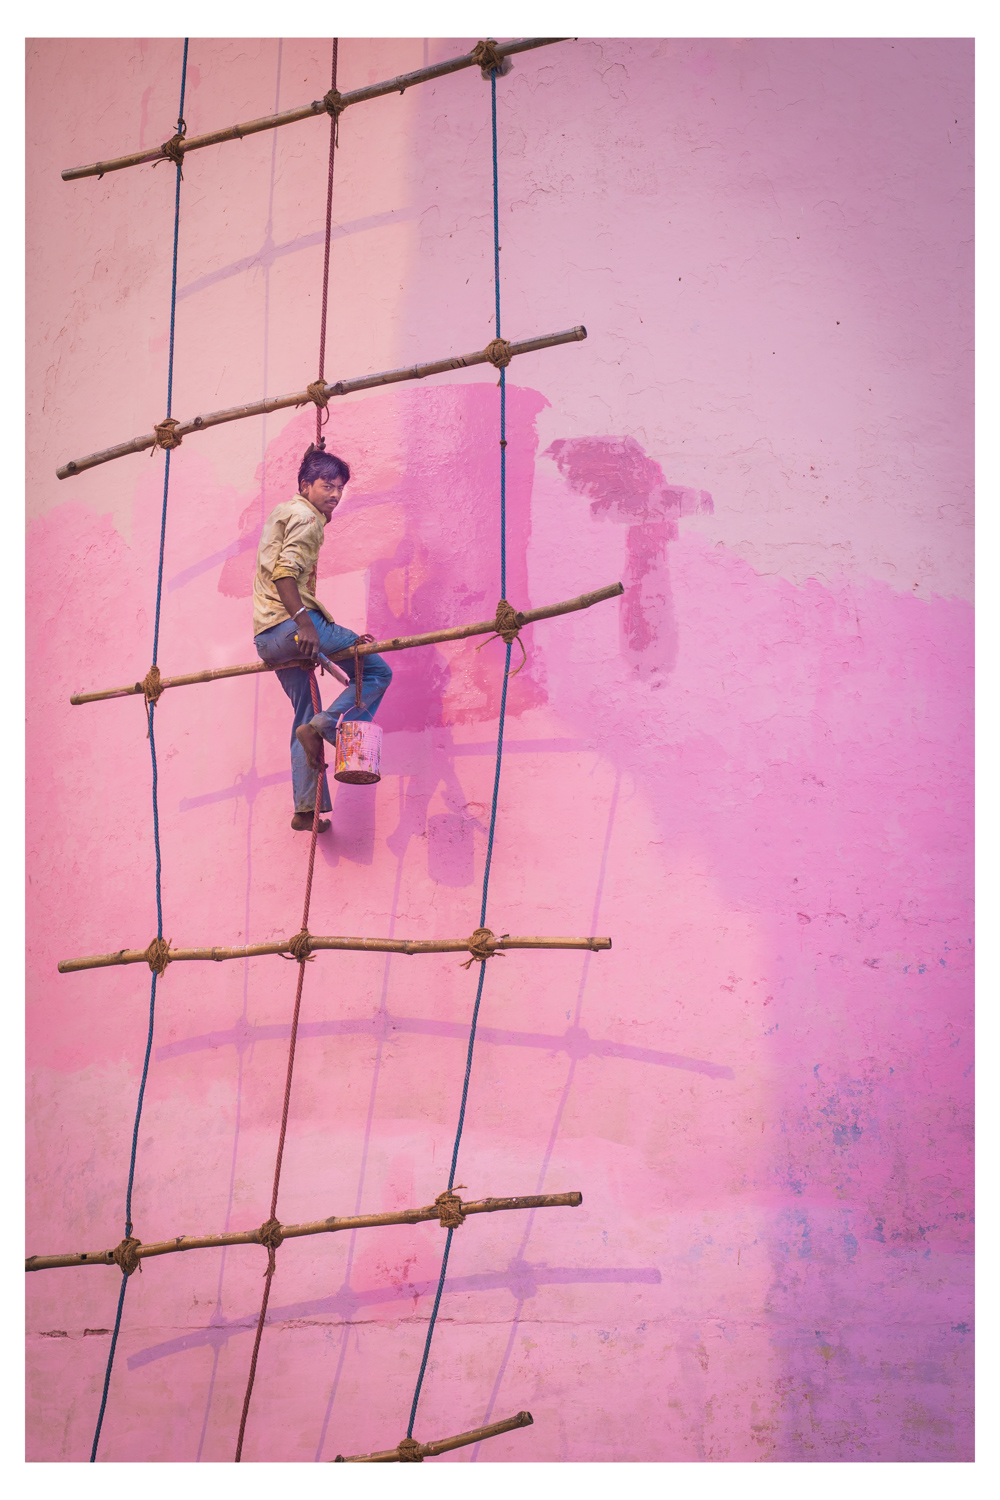 Man Painting Pink Wall - India 2012